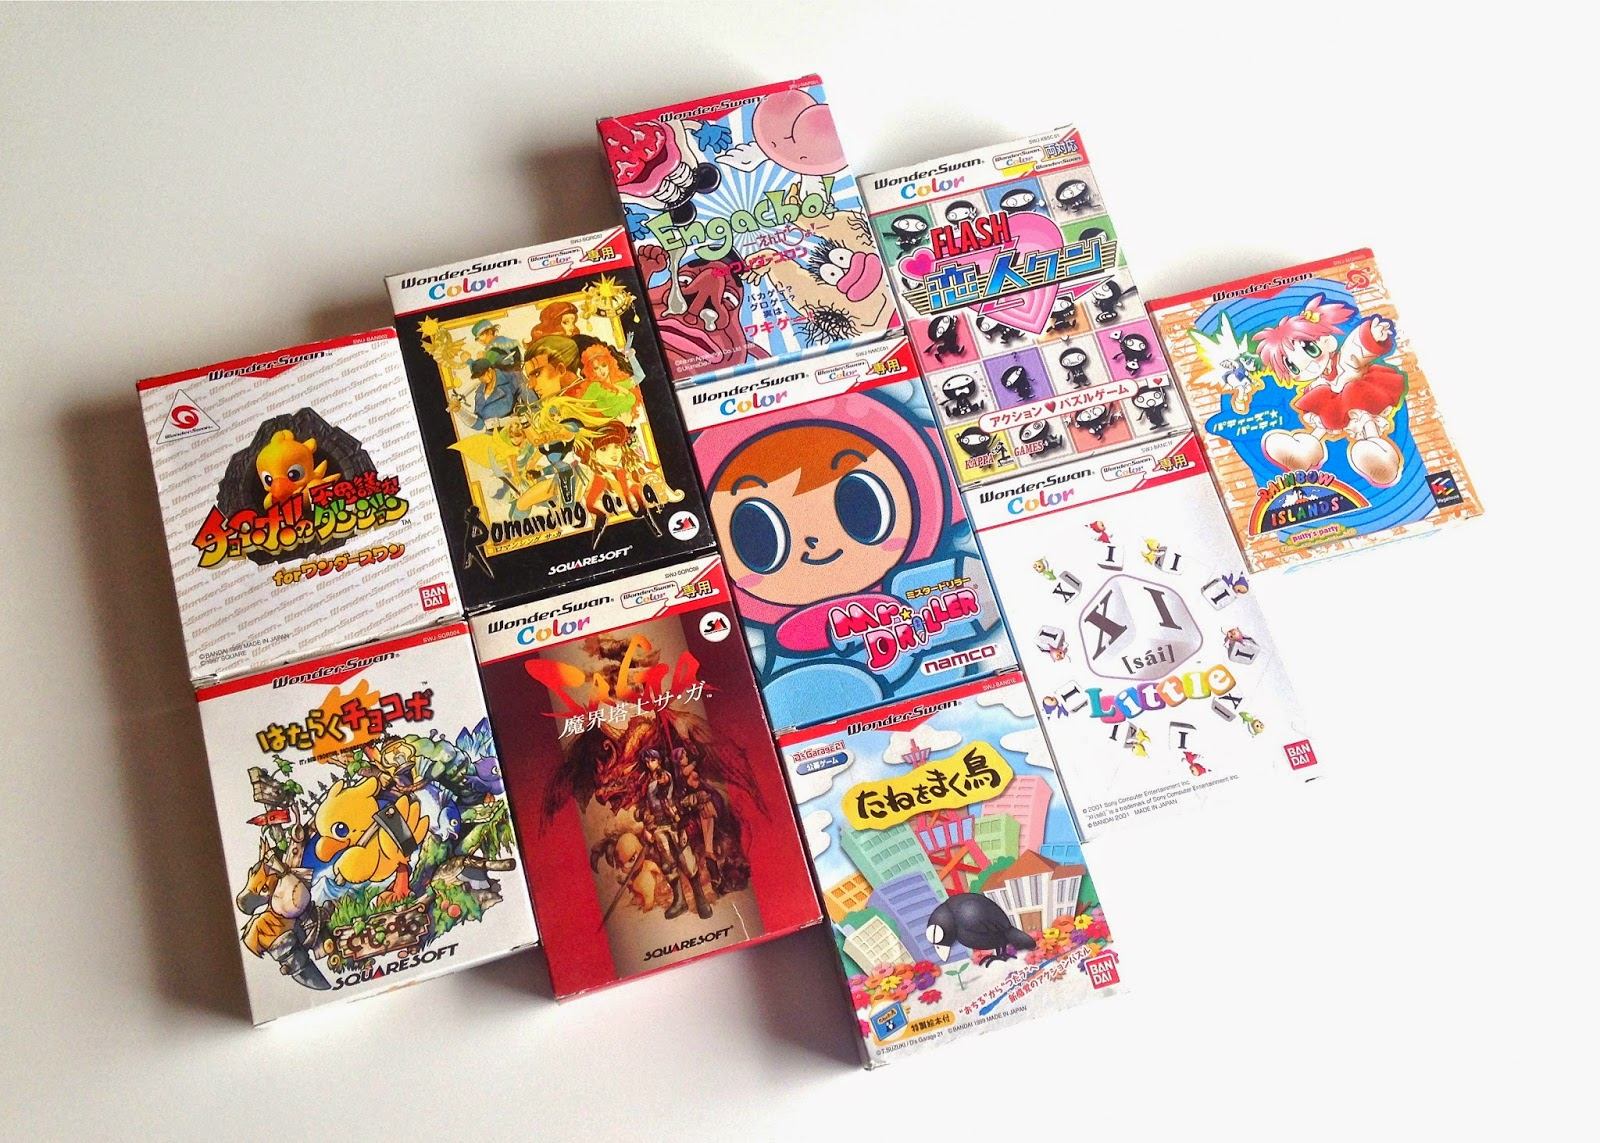 Color game japanese - Reason 408 I M A Bat Sh T Crazy Gamer I Now Own 10 Wonderswan Games But I Still Don T Own A System That Will Allow Me To Play Any Of Them